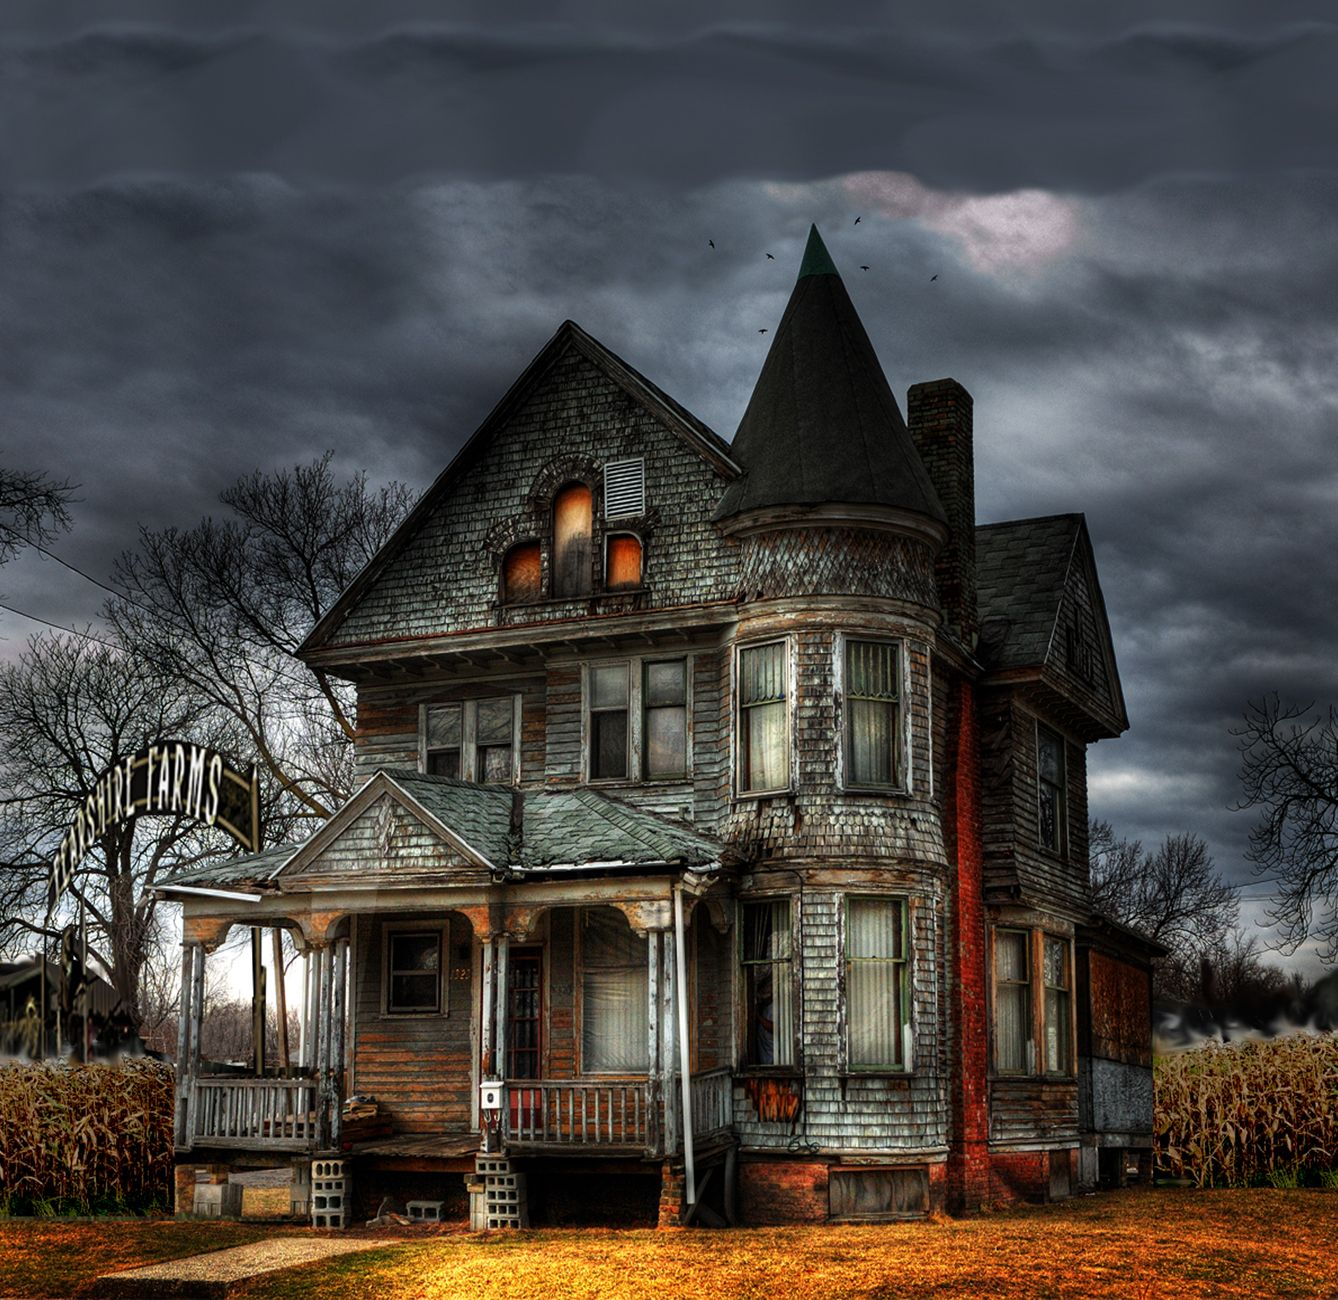 haunted abandoned houston houses places tx buildings area mansions homes halloween spooky creepy deyoung kevin ghost satan towns plan simple